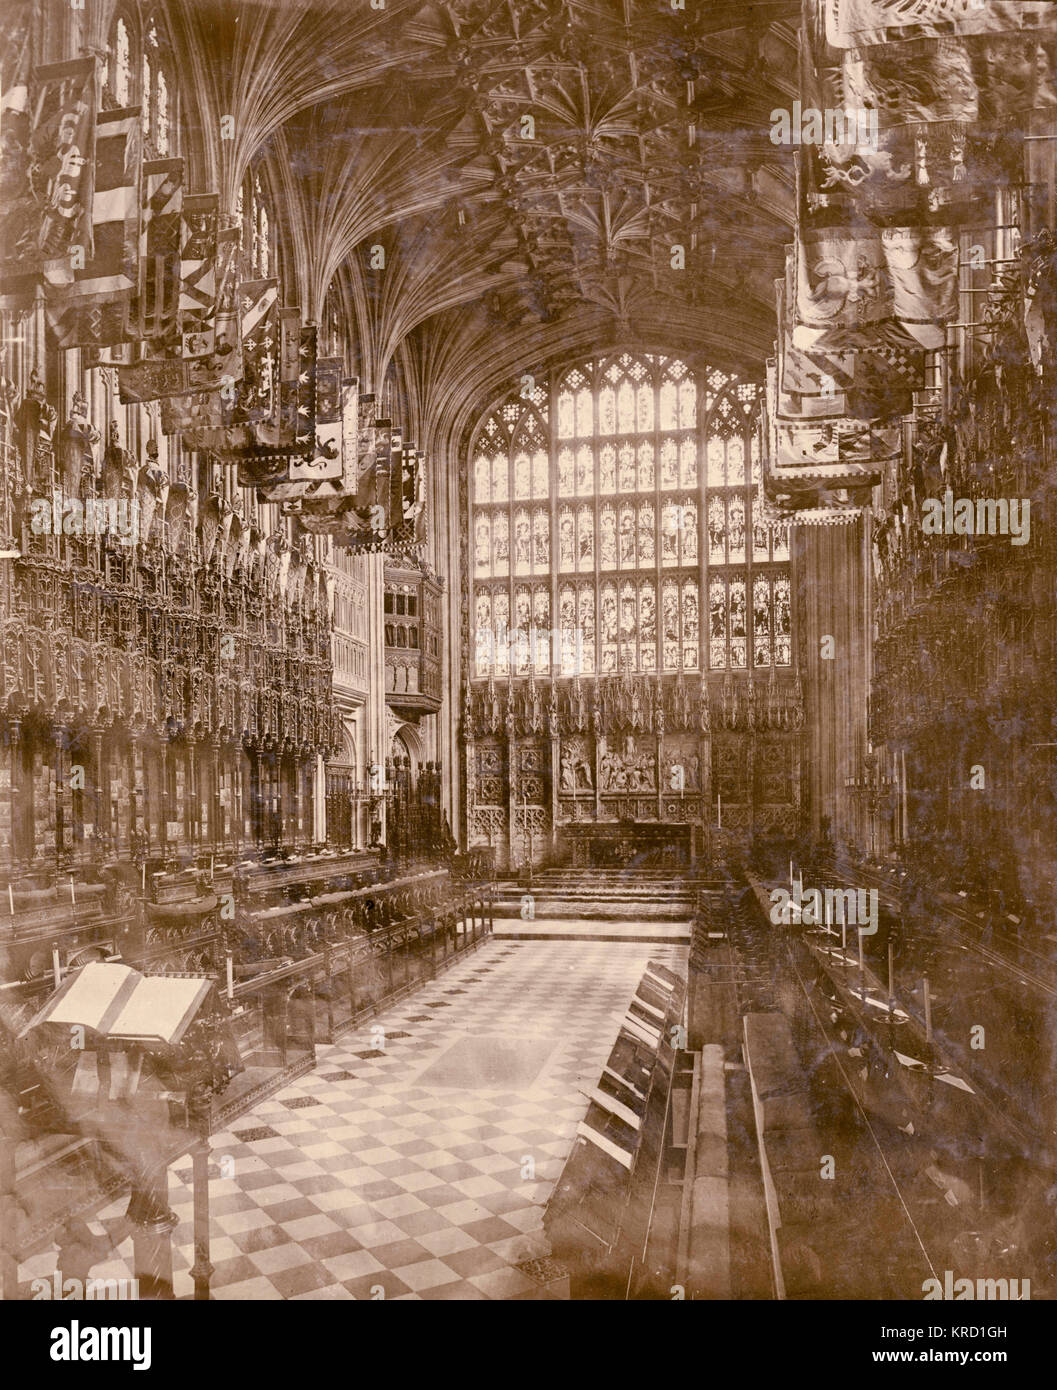 Interior of St George's Chapel, Windsor, at the time of the funeral of King Edward VII, showing the ornate gothic choir stalls, fan vaulting on the ceiling and stained glass windows.      Date: May 1910 Stock Photo